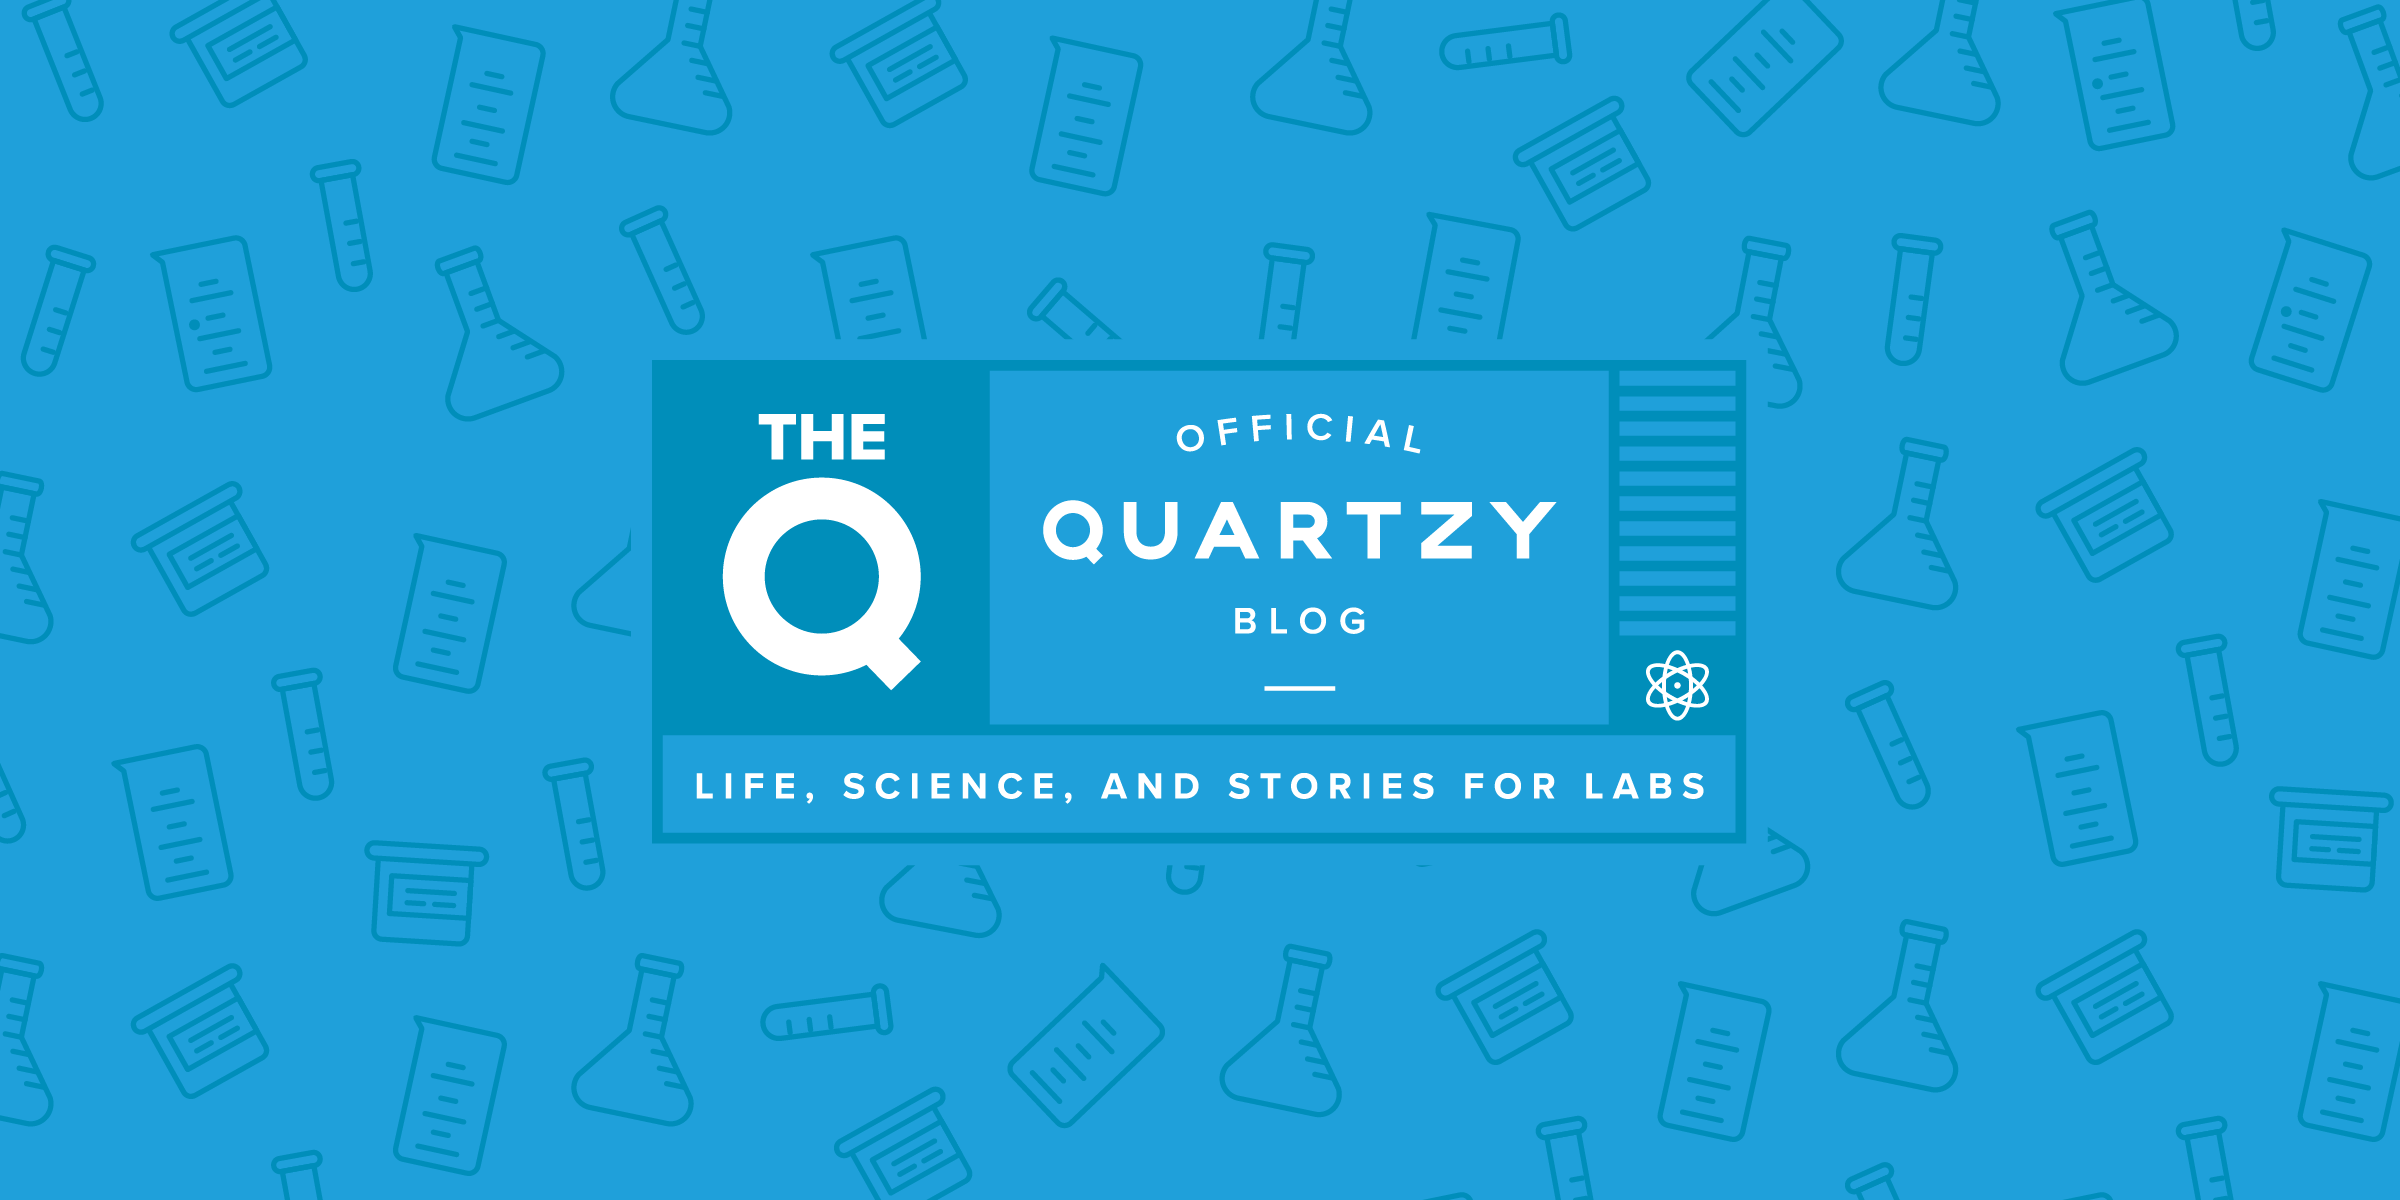 Quartzy Launches Extensive Online Product Catalog of Over 2 Million Lab Supplies from More than 600 Manufacturers